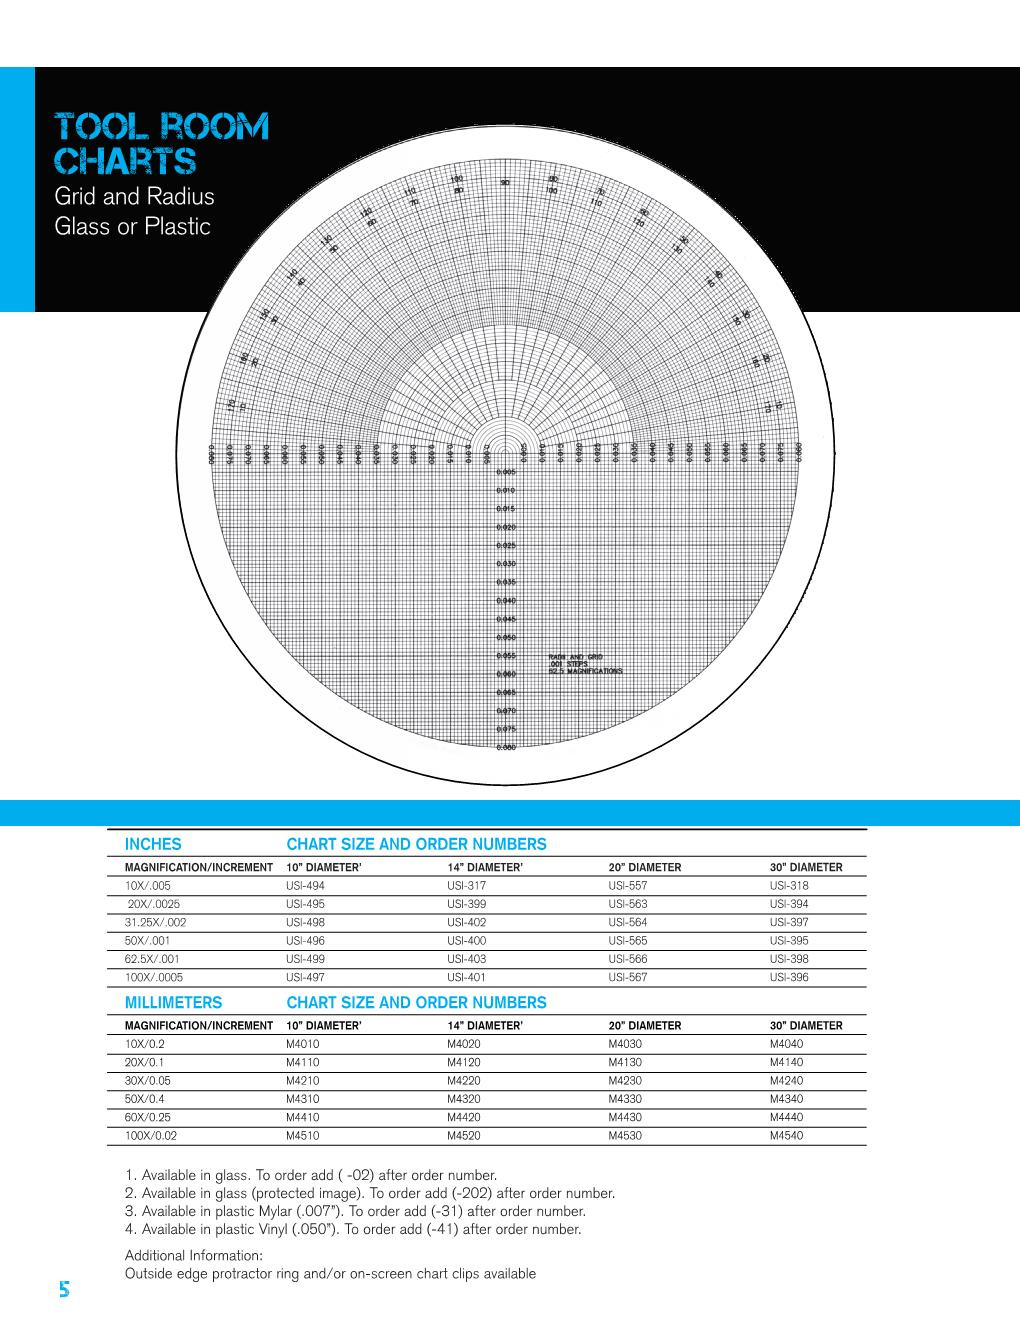 Unlimited Services Chart & Fixture Catalog 12.2018 FINAL Page 006.jpg